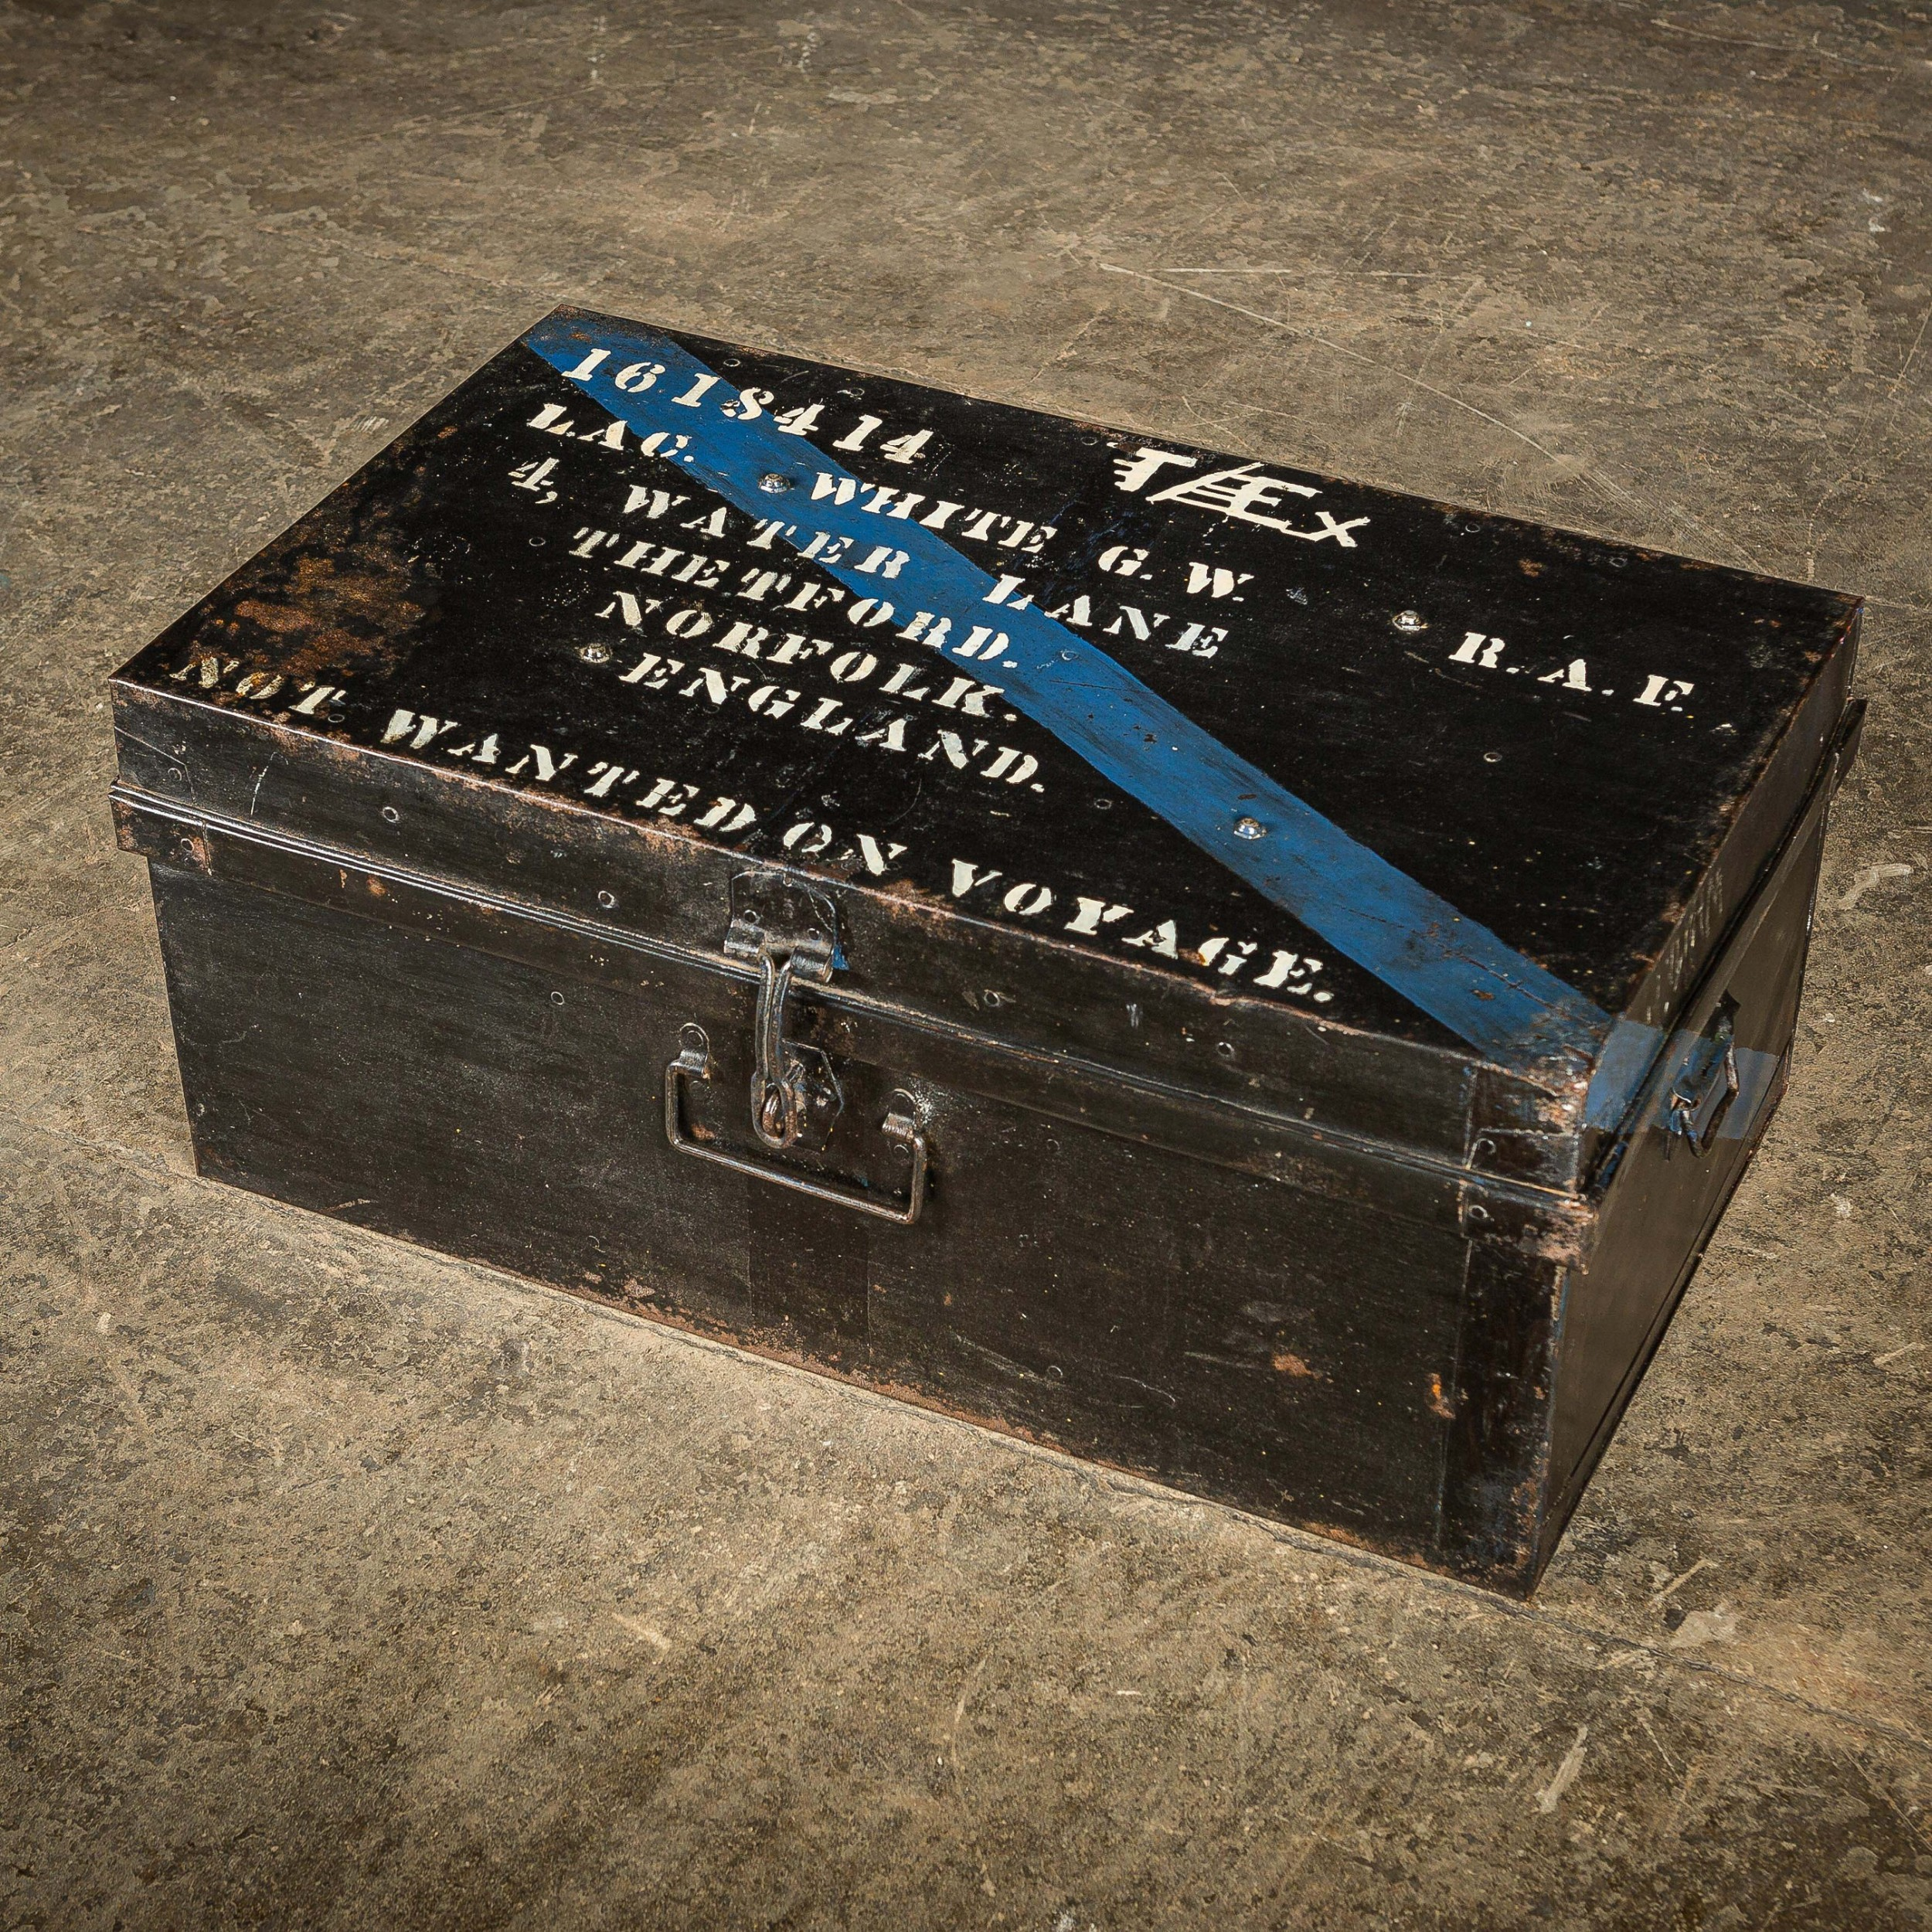 vintage raf black metal military travel trunk chest with carry handles and hasp and staple